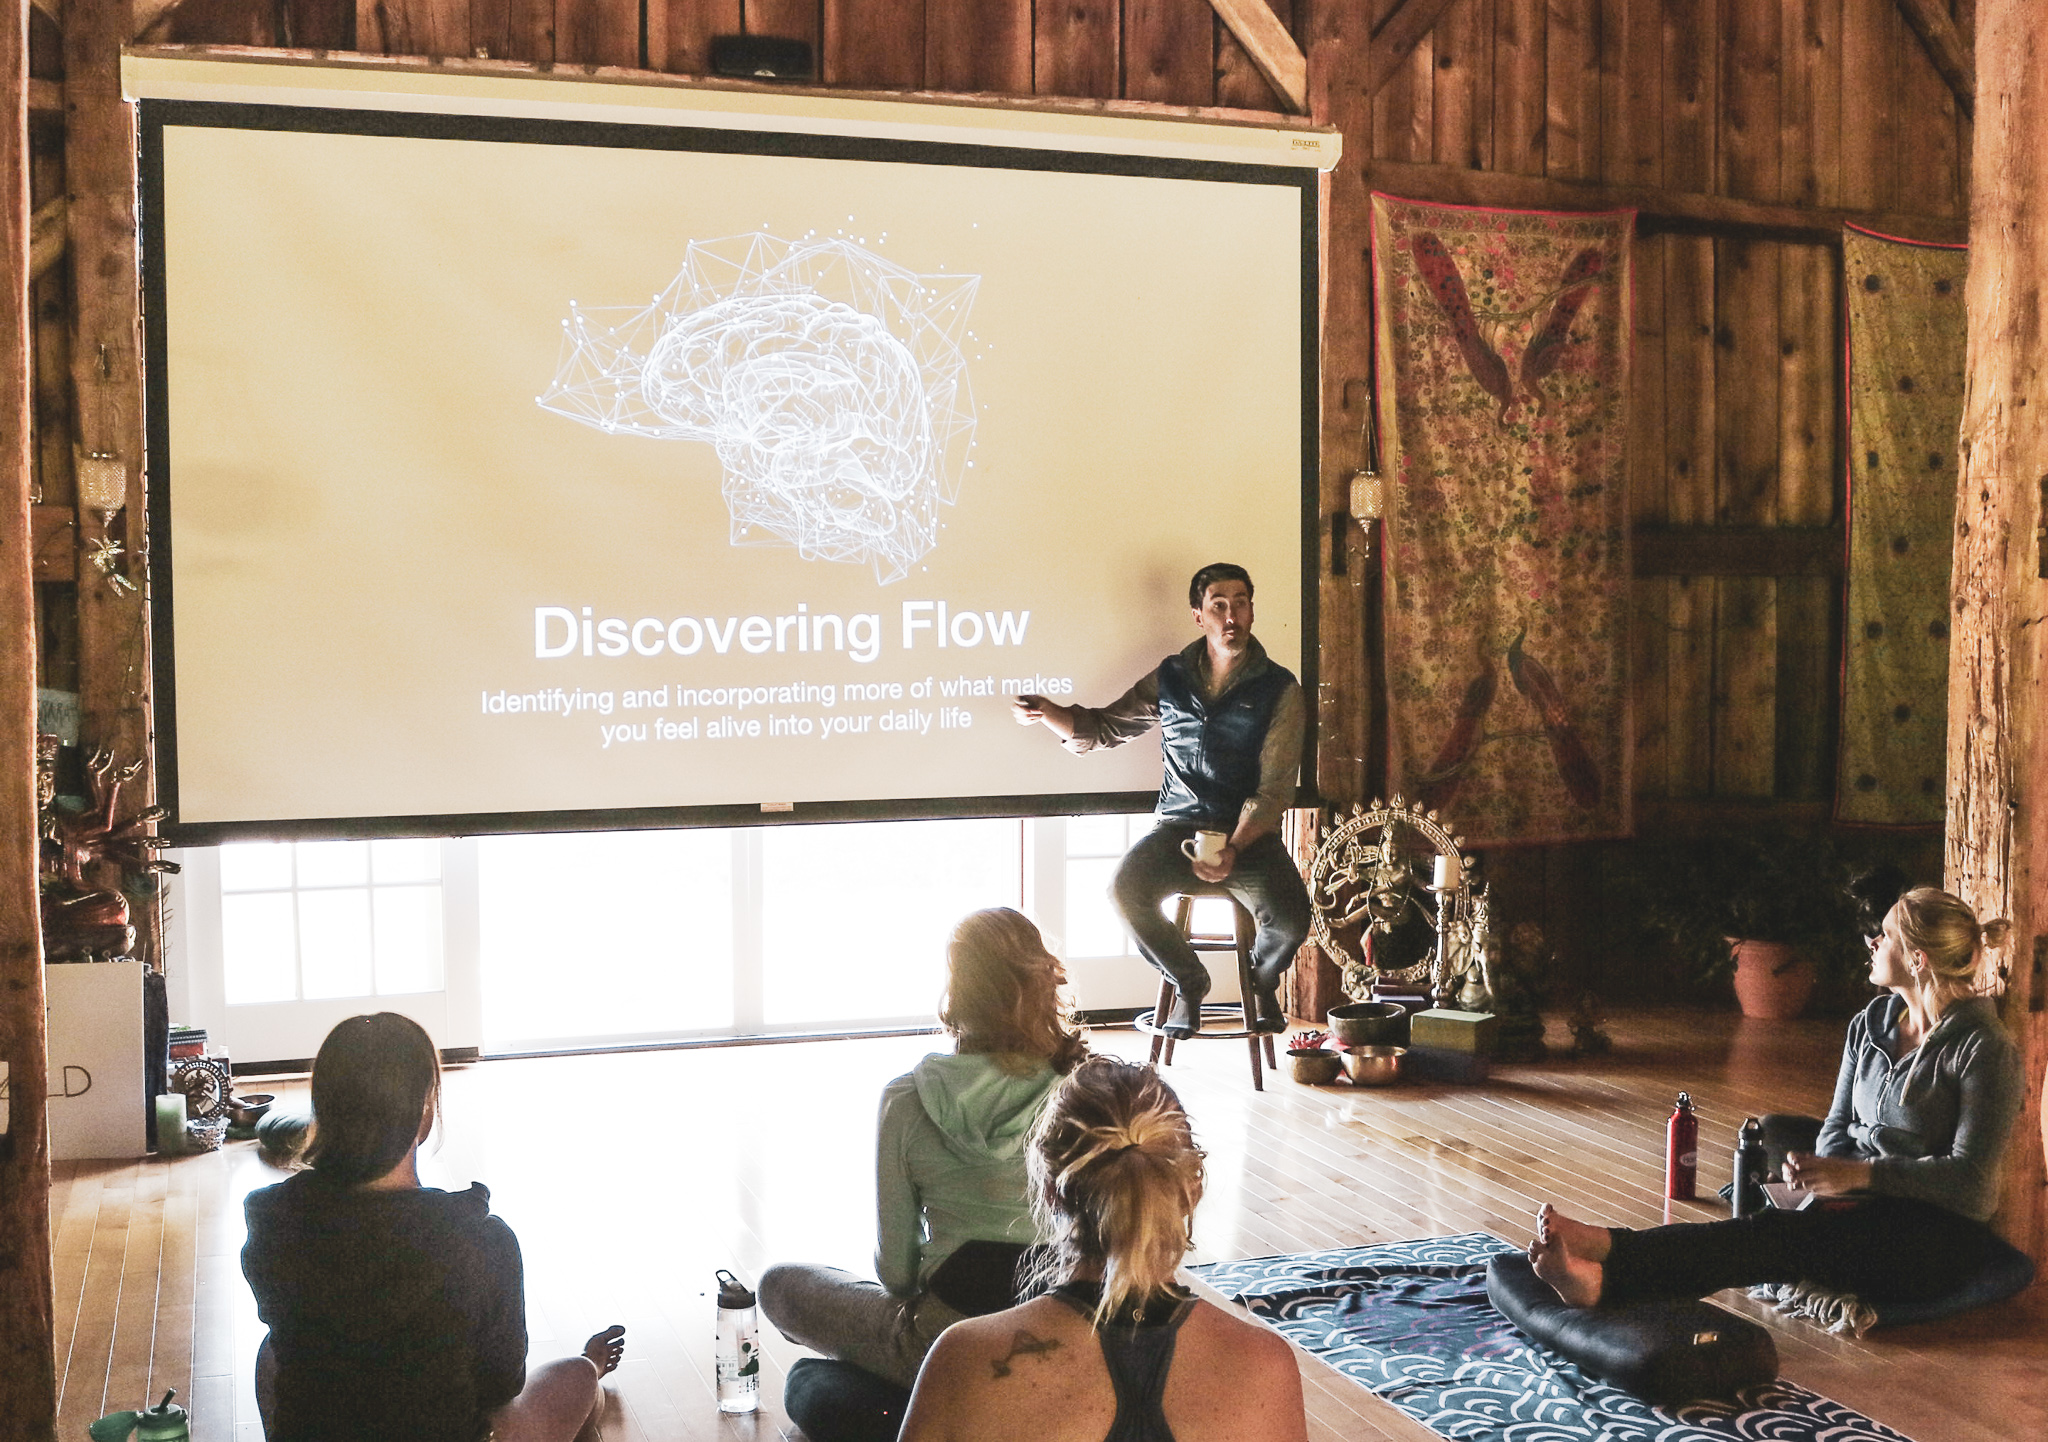 Leading a workshop on flow states at Outwild Women's Retreat - Sandwich, NH - Facilitated a discussion around the science of flow and how to create more of it in your daily life.